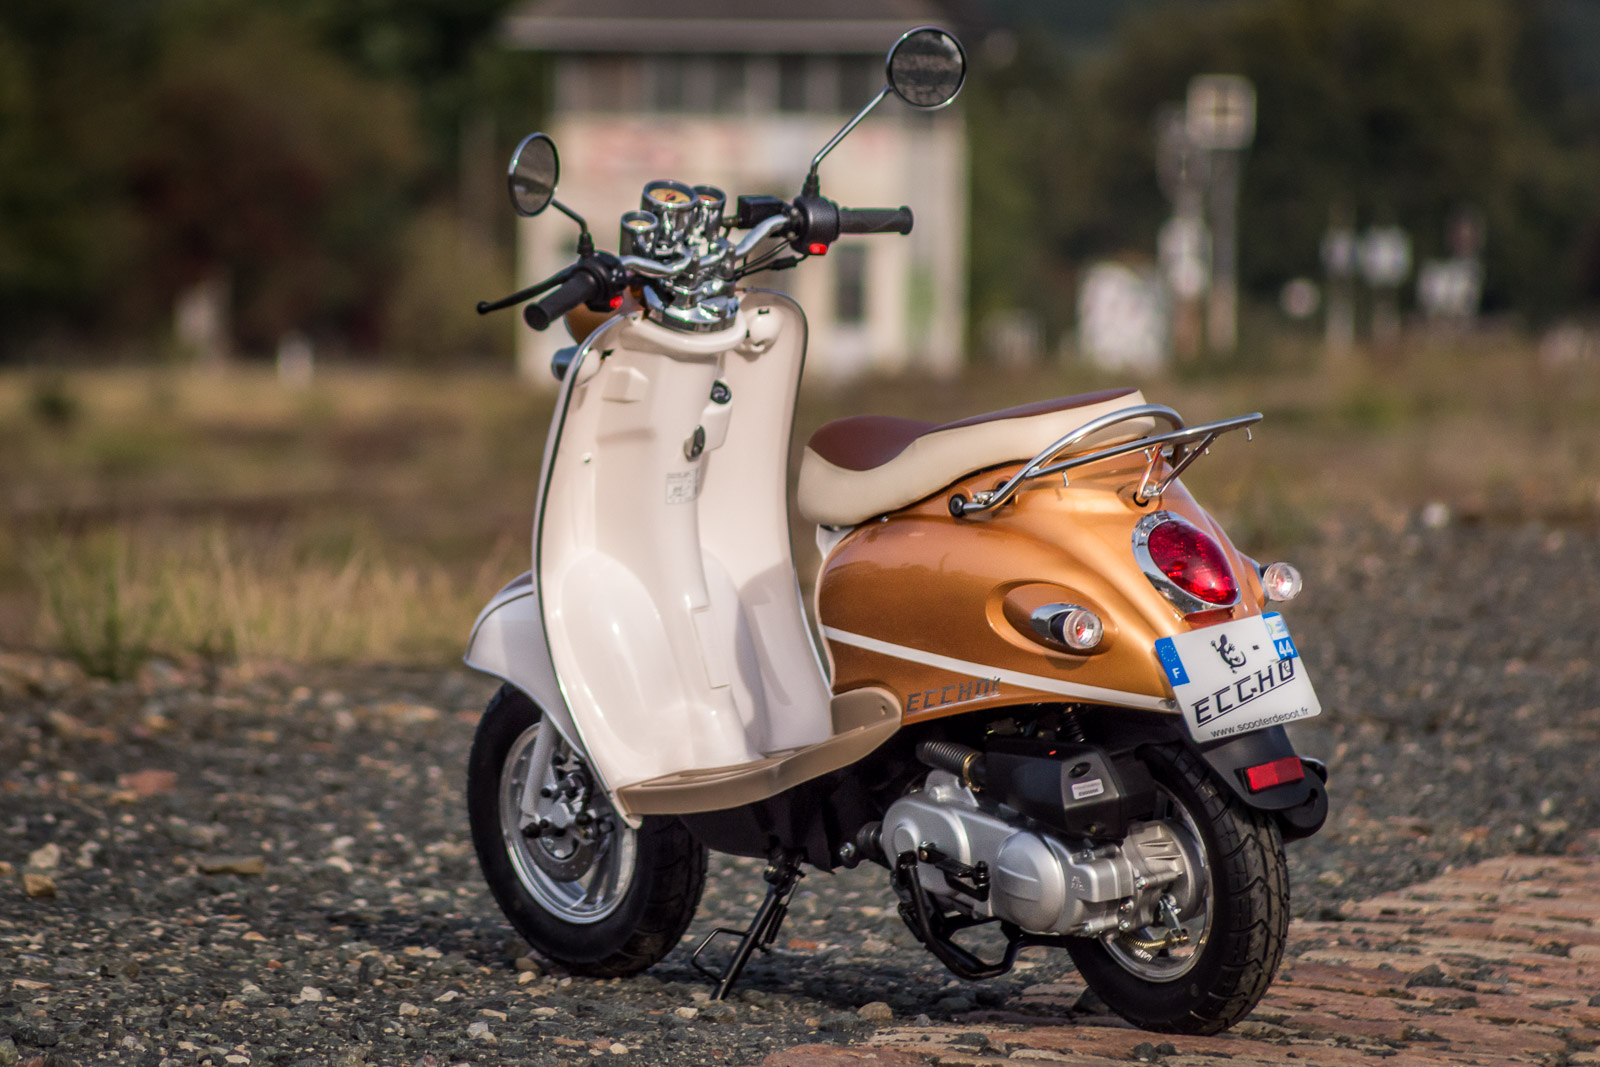 SCOOTER-50-ECCHO-RETRO-GOLDER-07